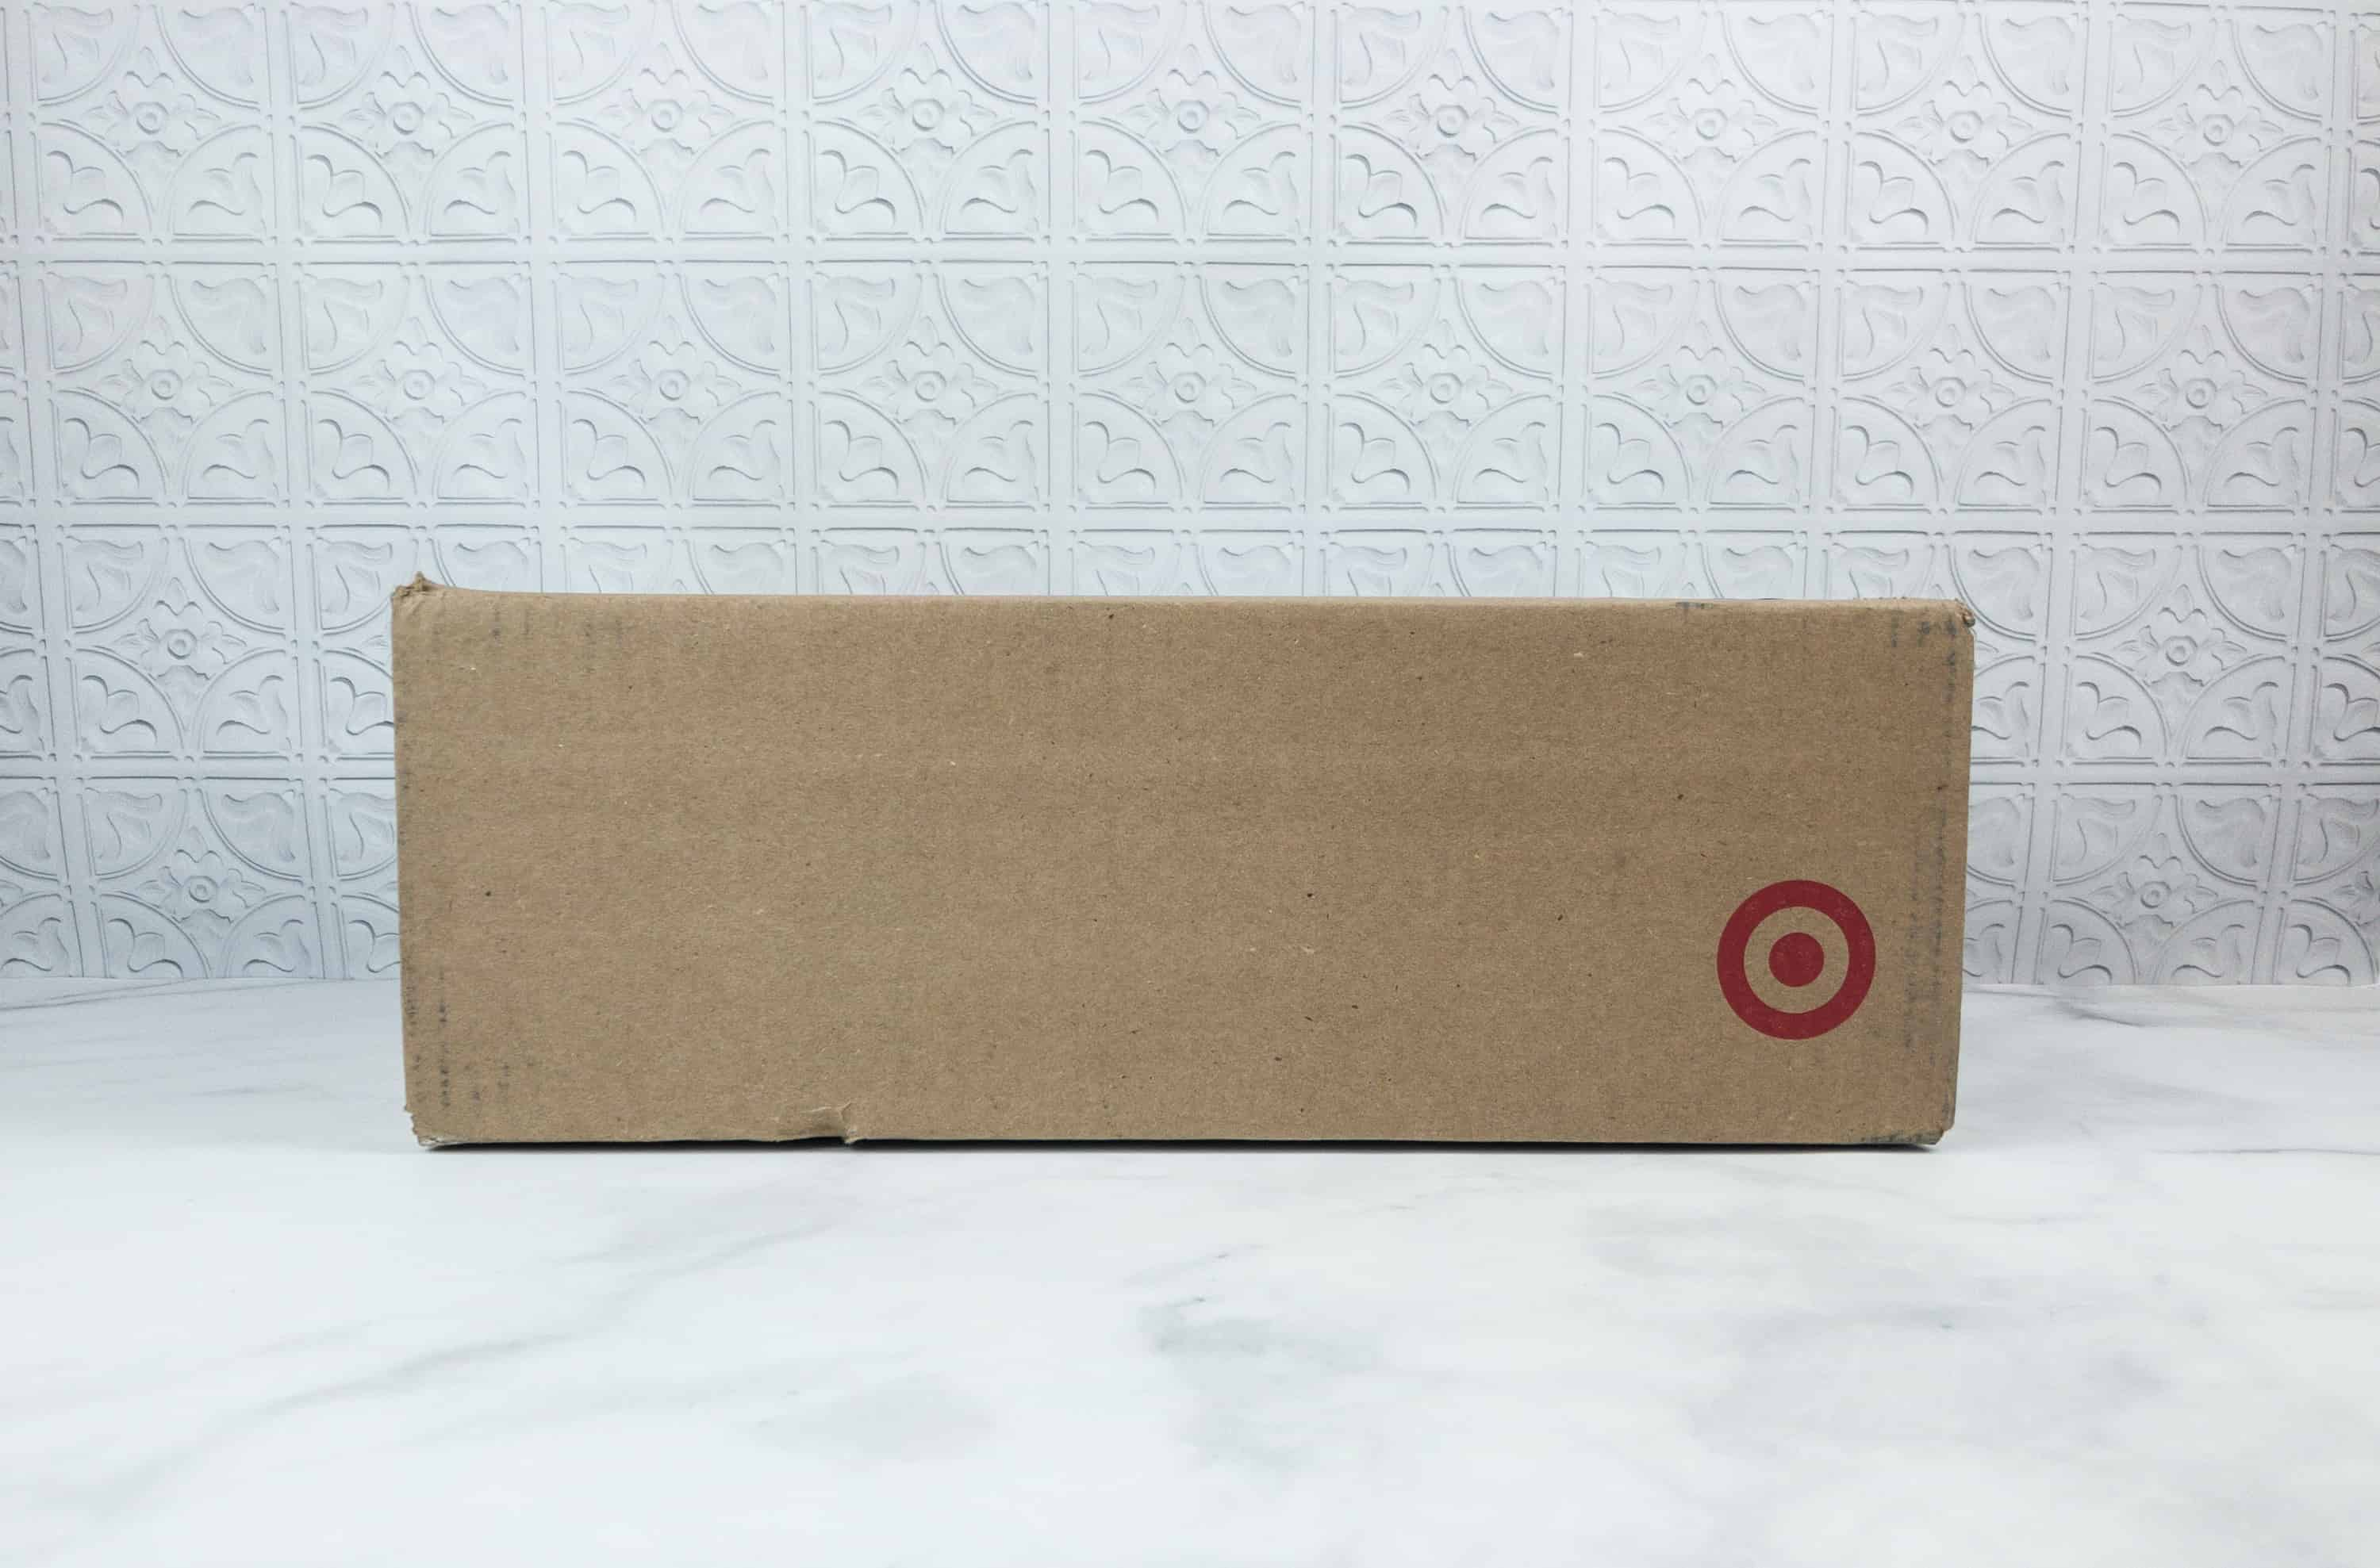 Target Art Craft Kit July 2018 Review Hello Subscription